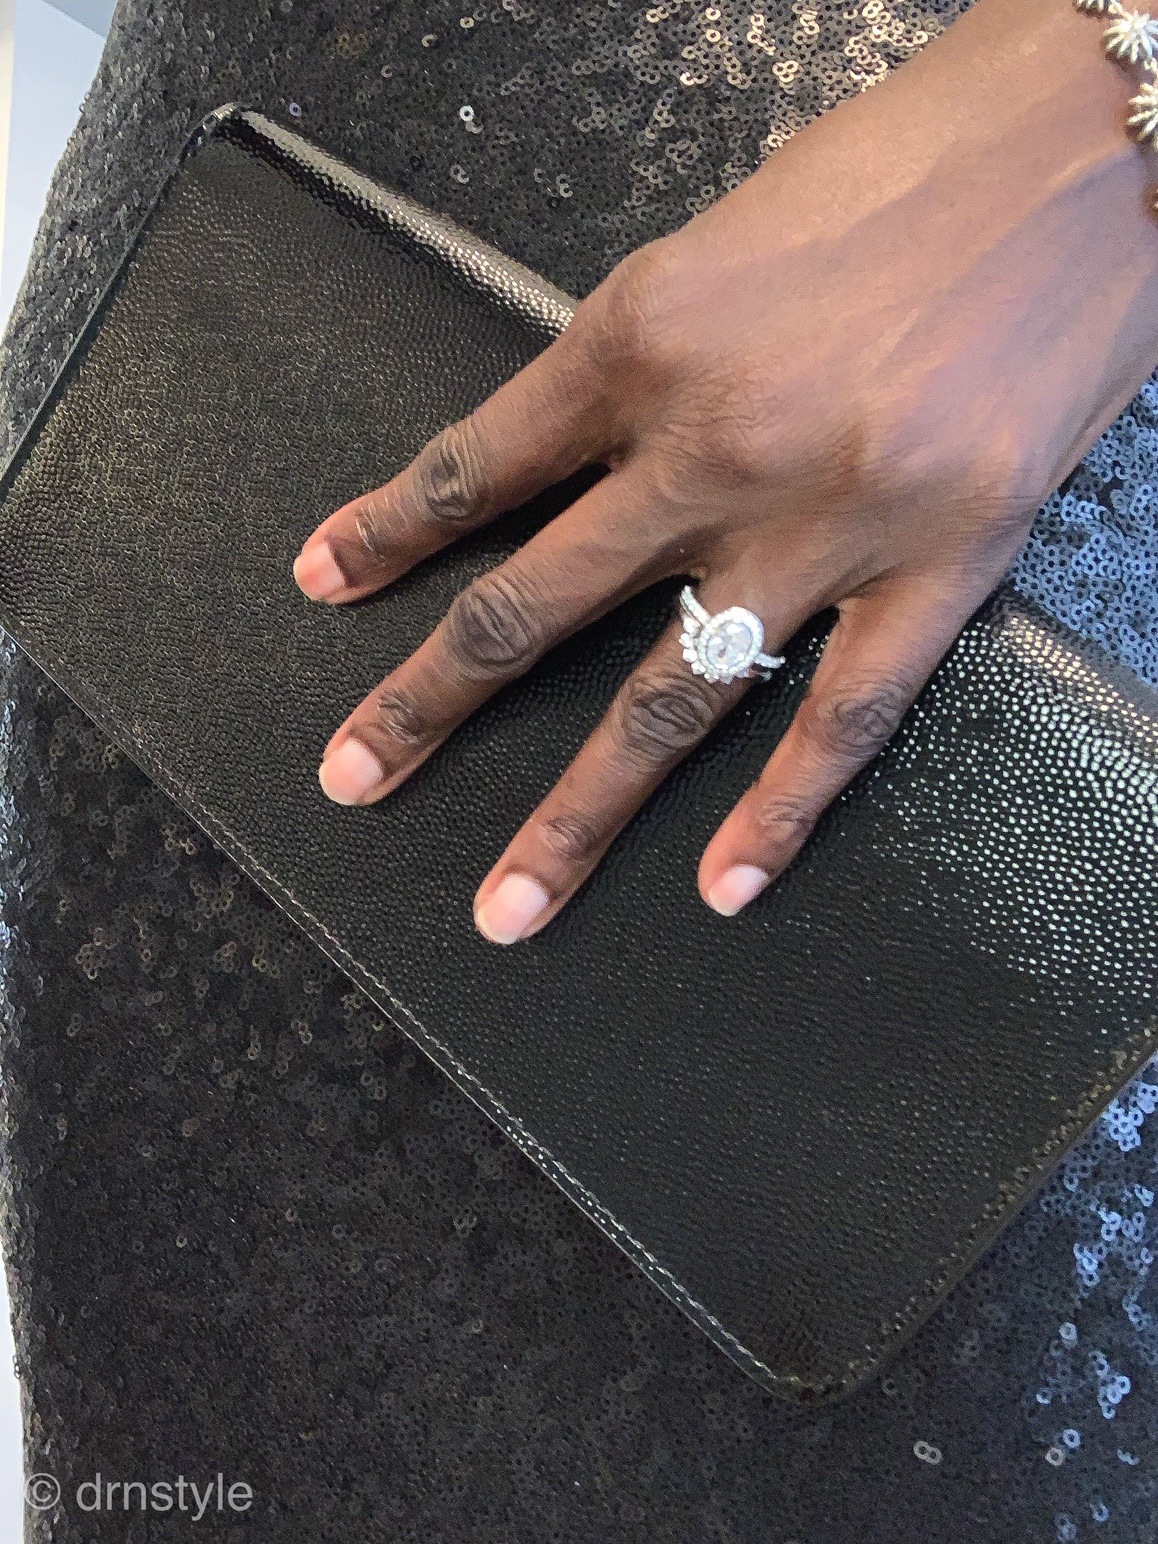 I dressed up my ethically sourced and sustainably made diamond ring, and dressed it down, to see what it would be like to wear it everyday.